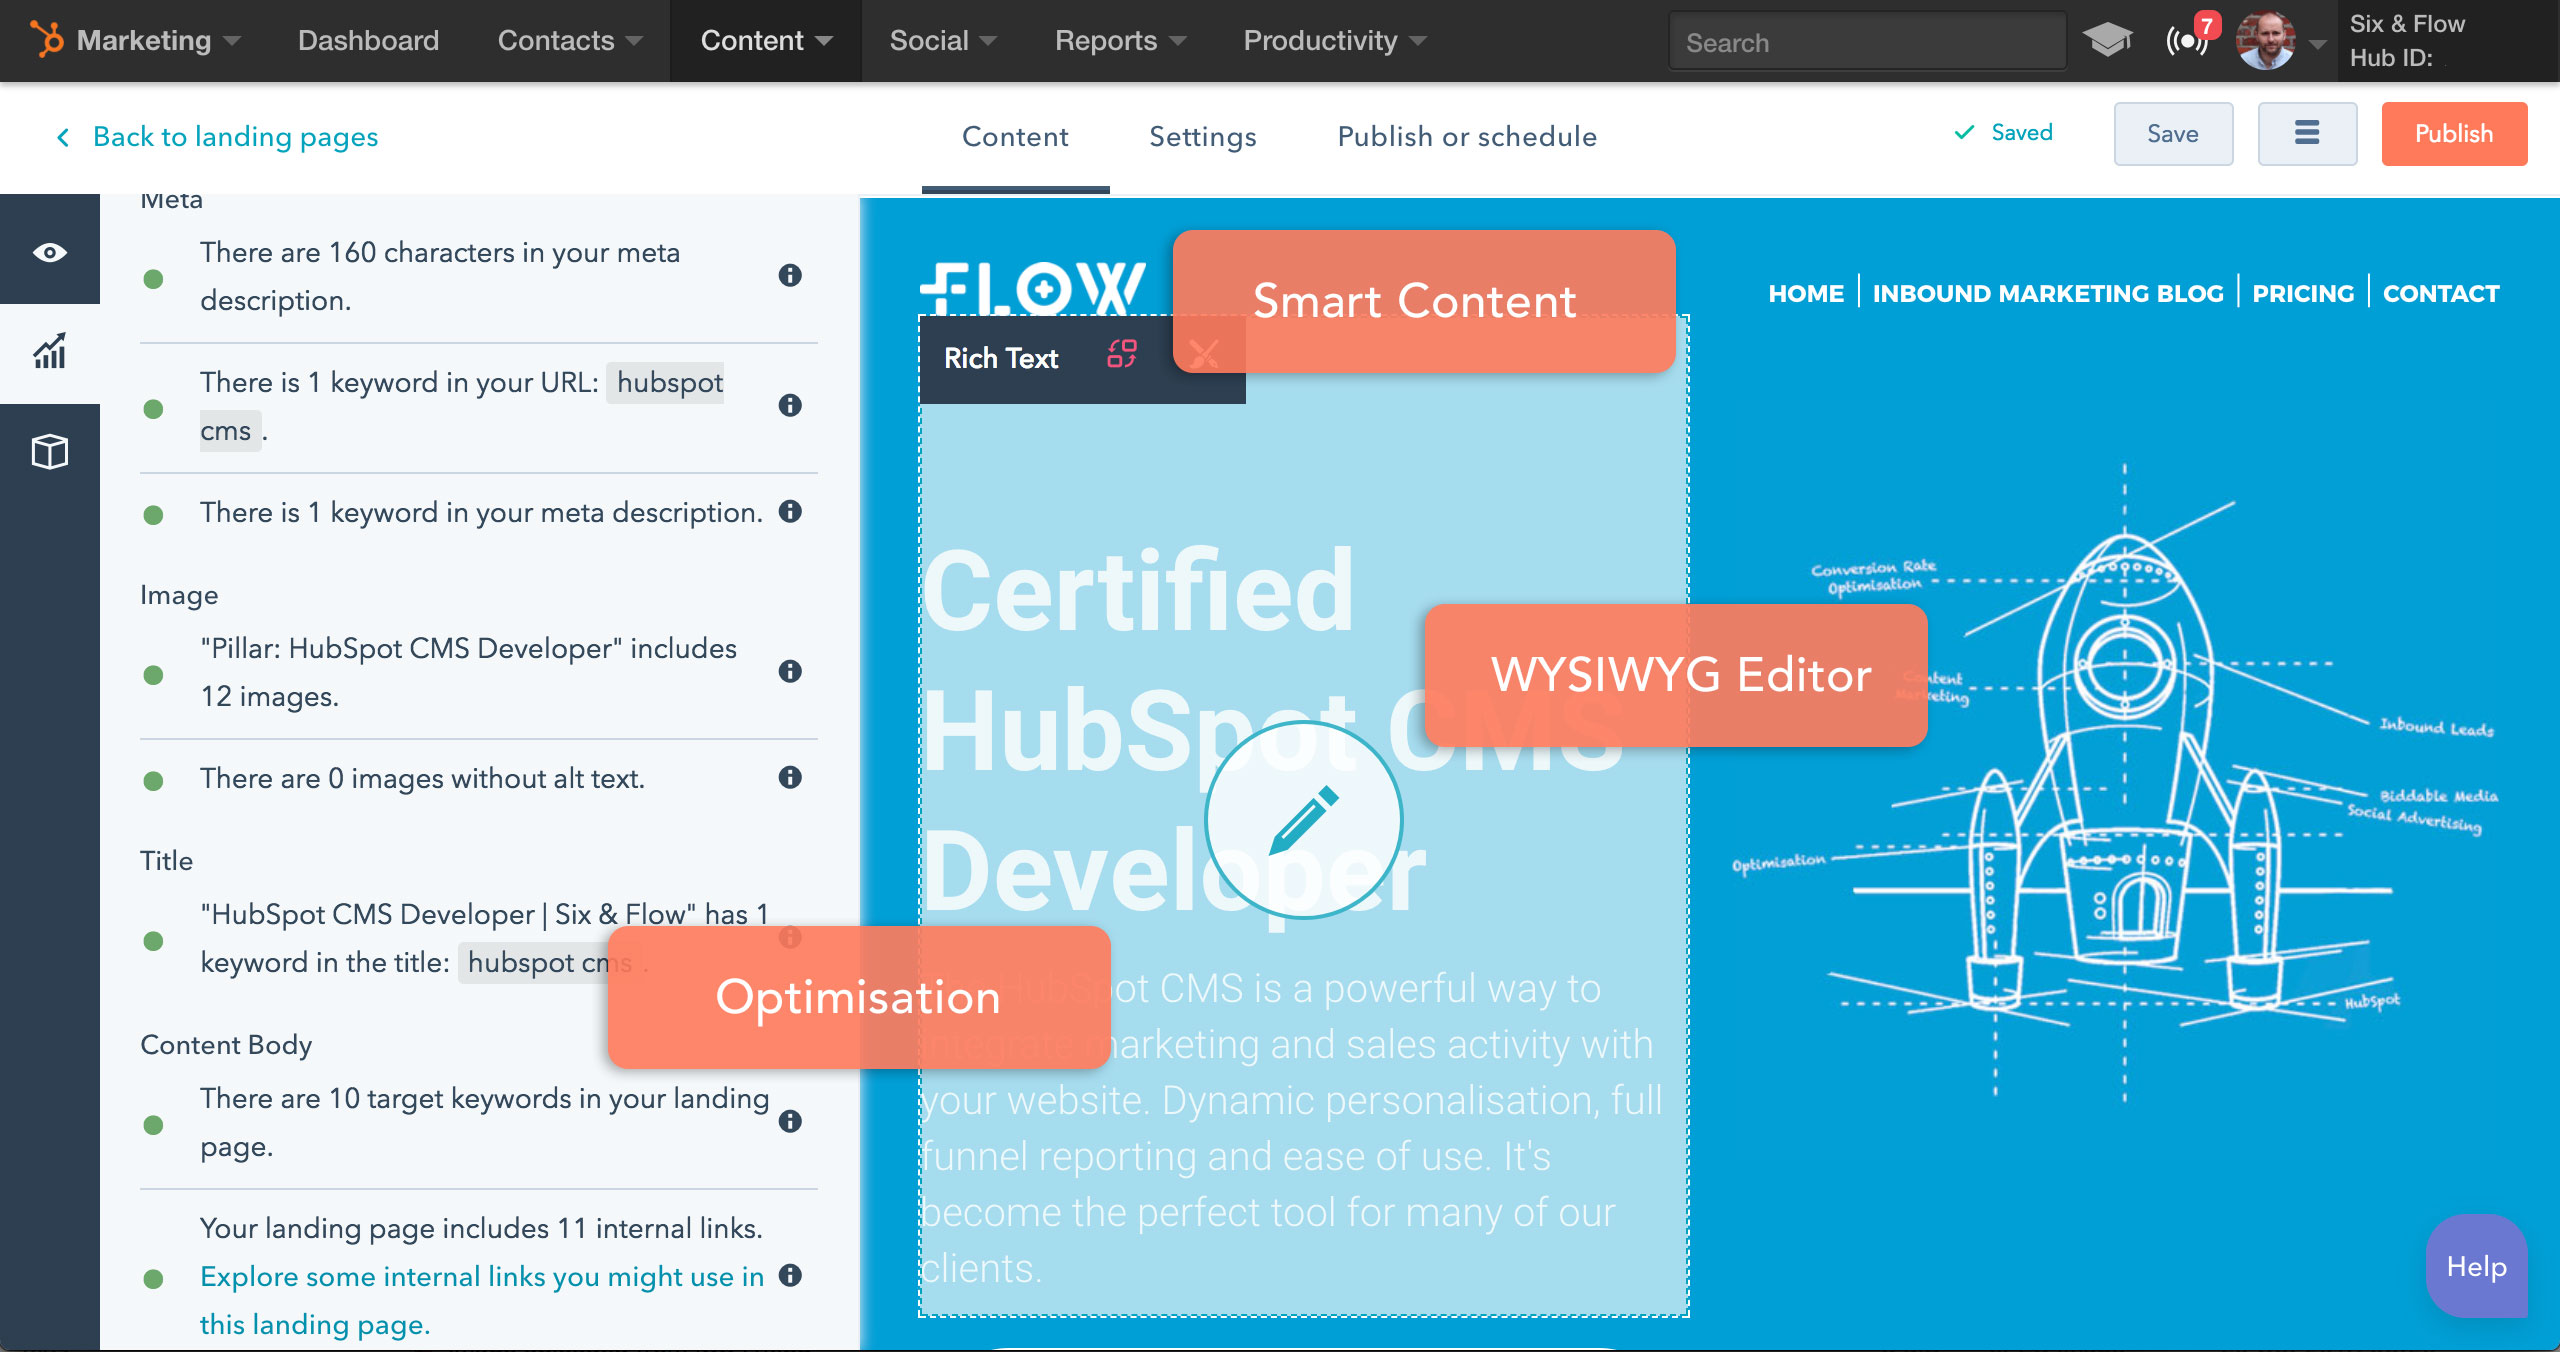 HubSpot CMS Developer